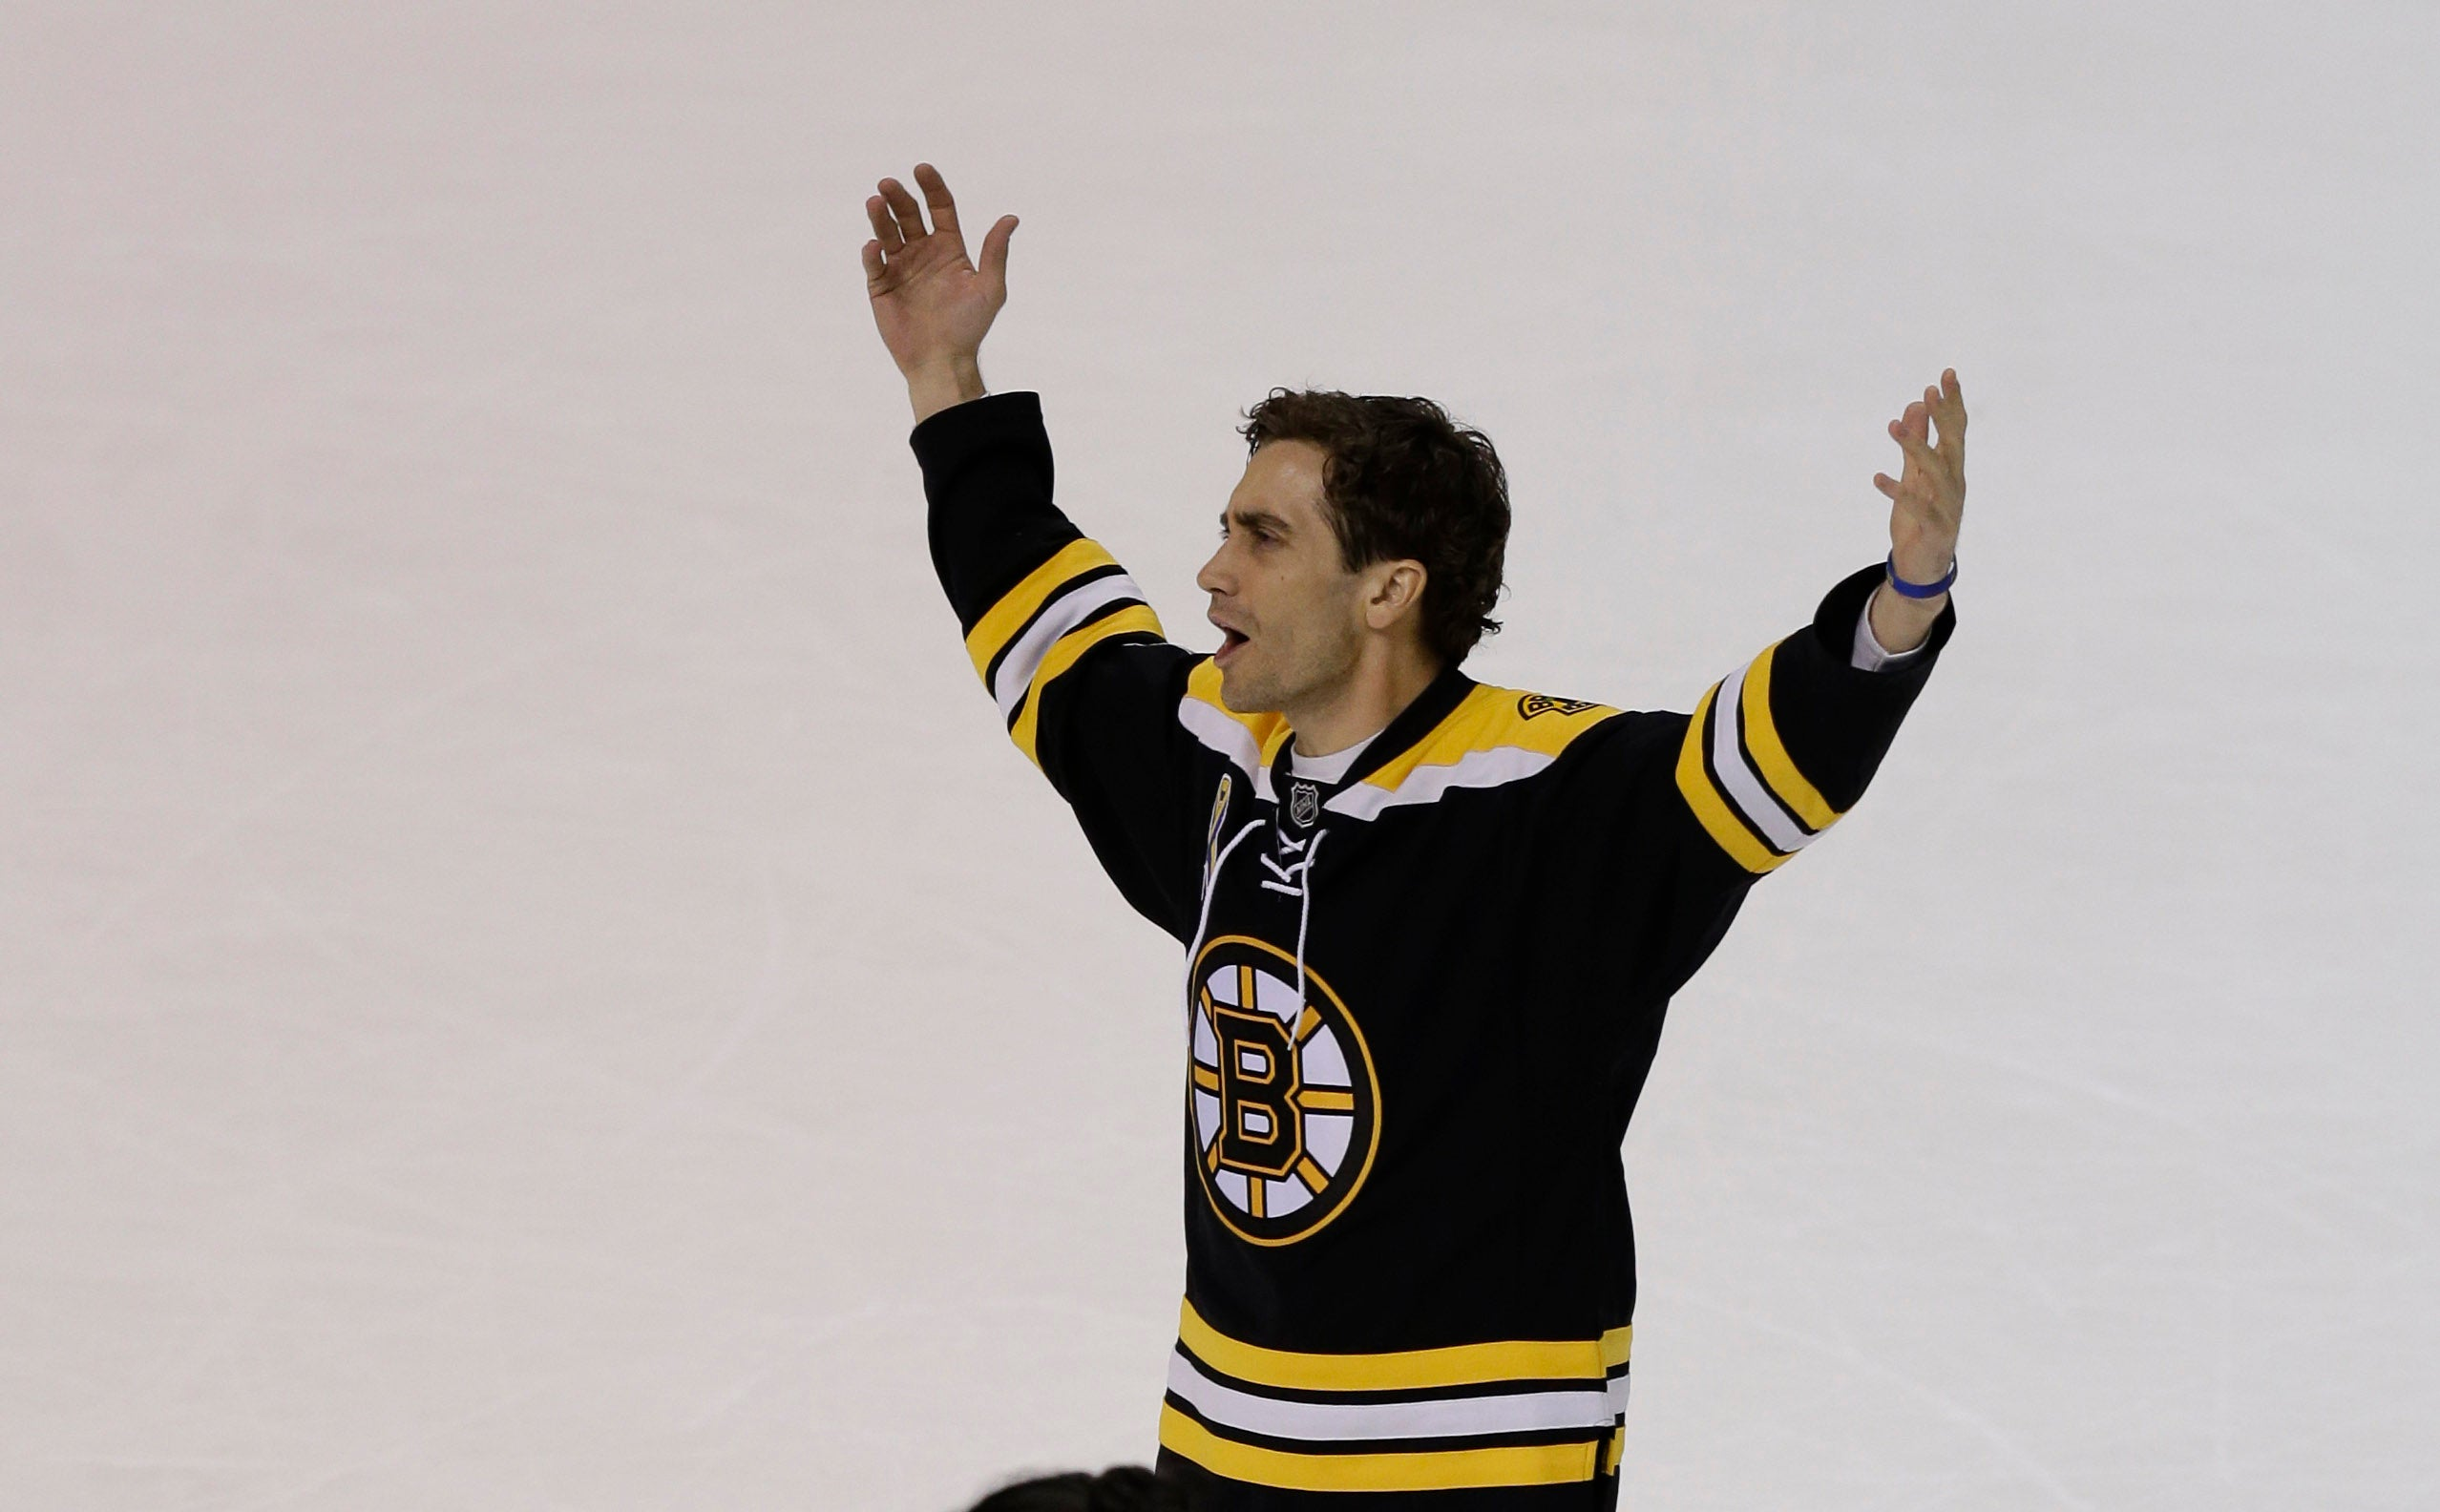 Gyllenhaal thanks the crowd of Bruins fans after filming the scene.